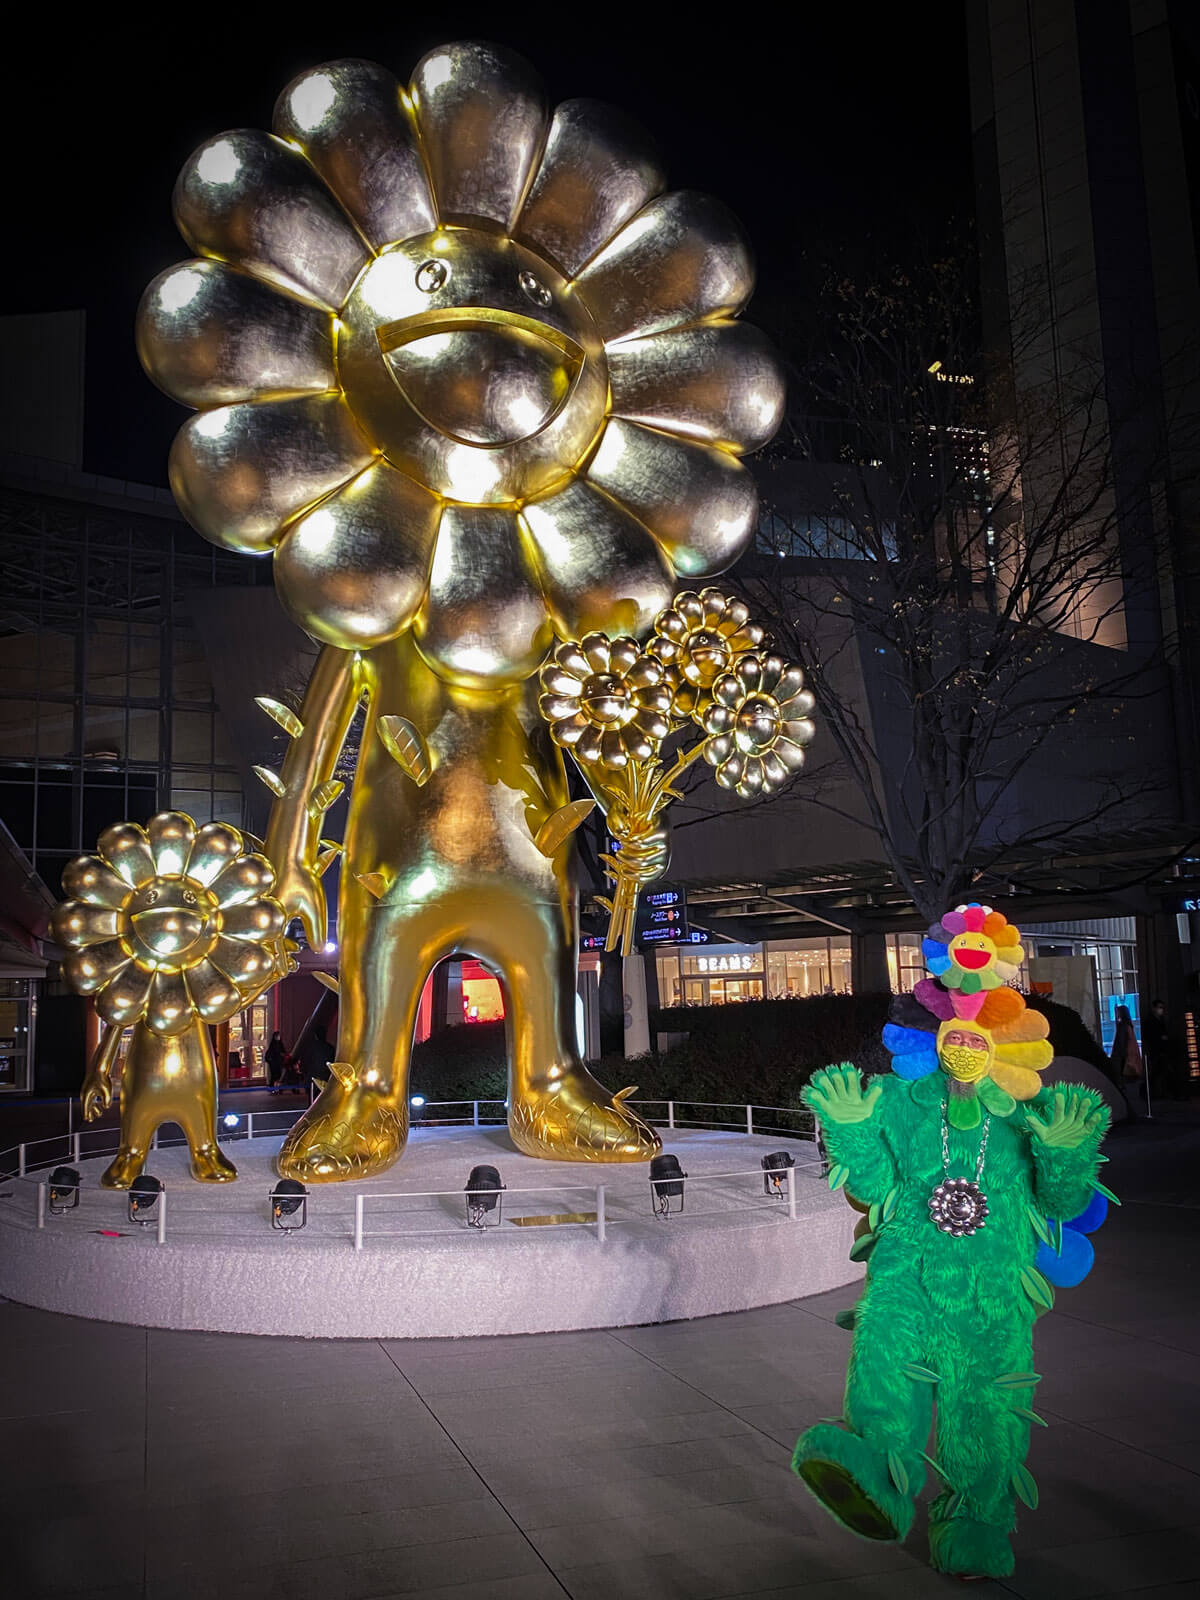 Takashi Murakami artwork in Roppongi Hills covered by GoConnect